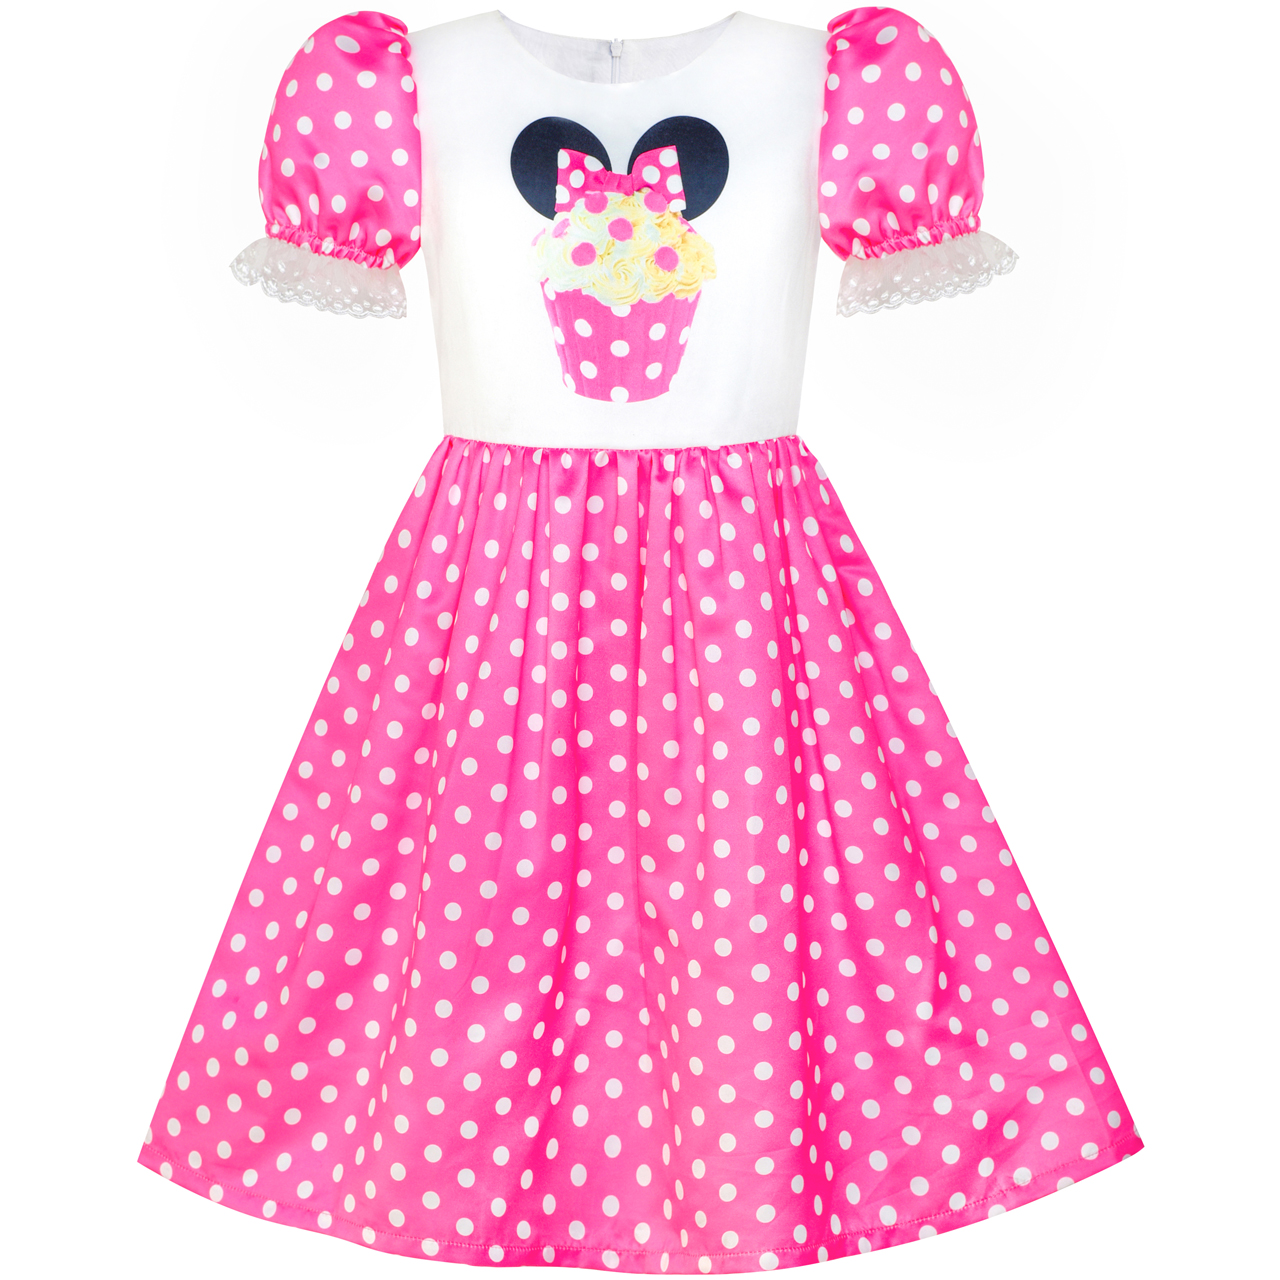 Sunny Fashion Girls Dress Birthday Cupcake Polka Dot Birthday Princess 2018 Summer Wedding Party Dresses Kids Clothes Size 3-8 sunny fashion girls dress birthday cupcake polka dot birthday princess 2018 summer wedding party dresses kids clothes size 3 8